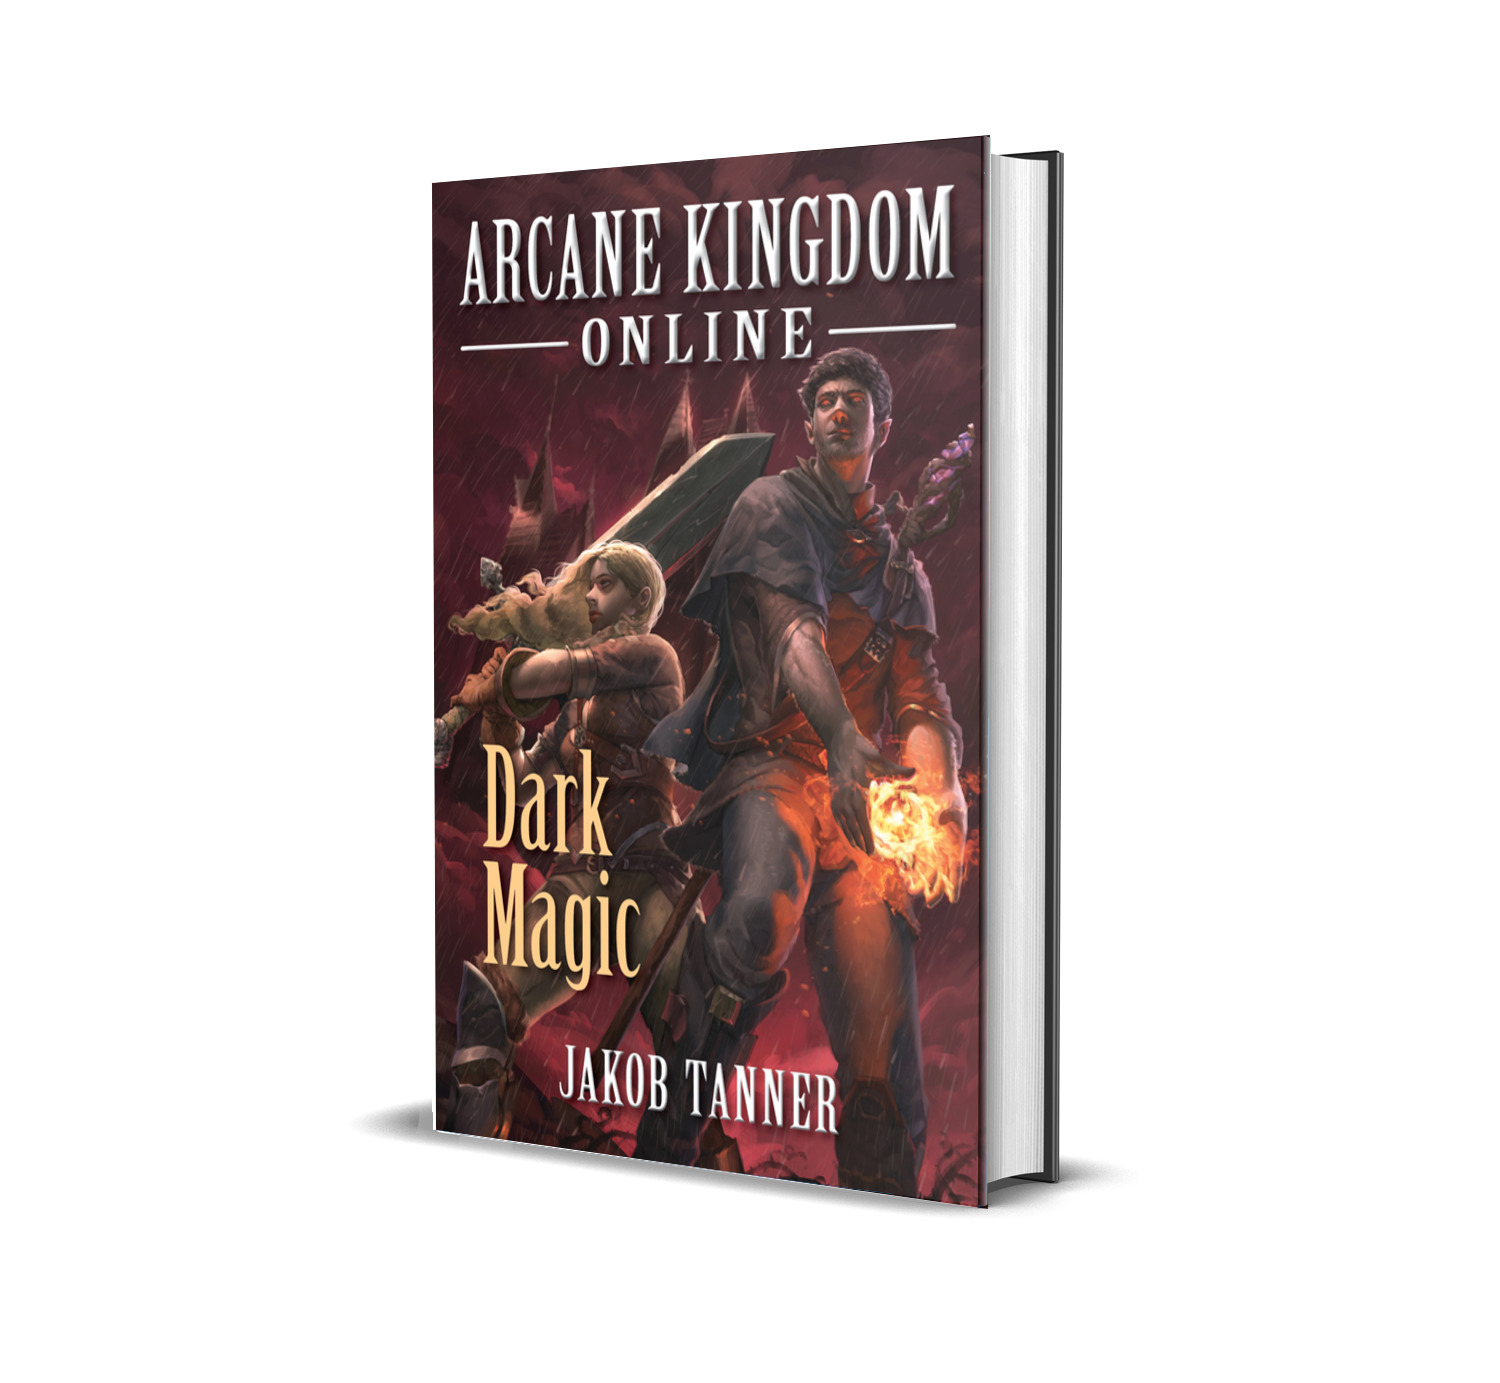 Arcane Kingdom Online: Dark Magic - Nowhere is safe: online or off.The ZERO virus continues its spread across the globe. For Clay Hopewell and his friends this spells more danger than ever before.Your next quest starts now.